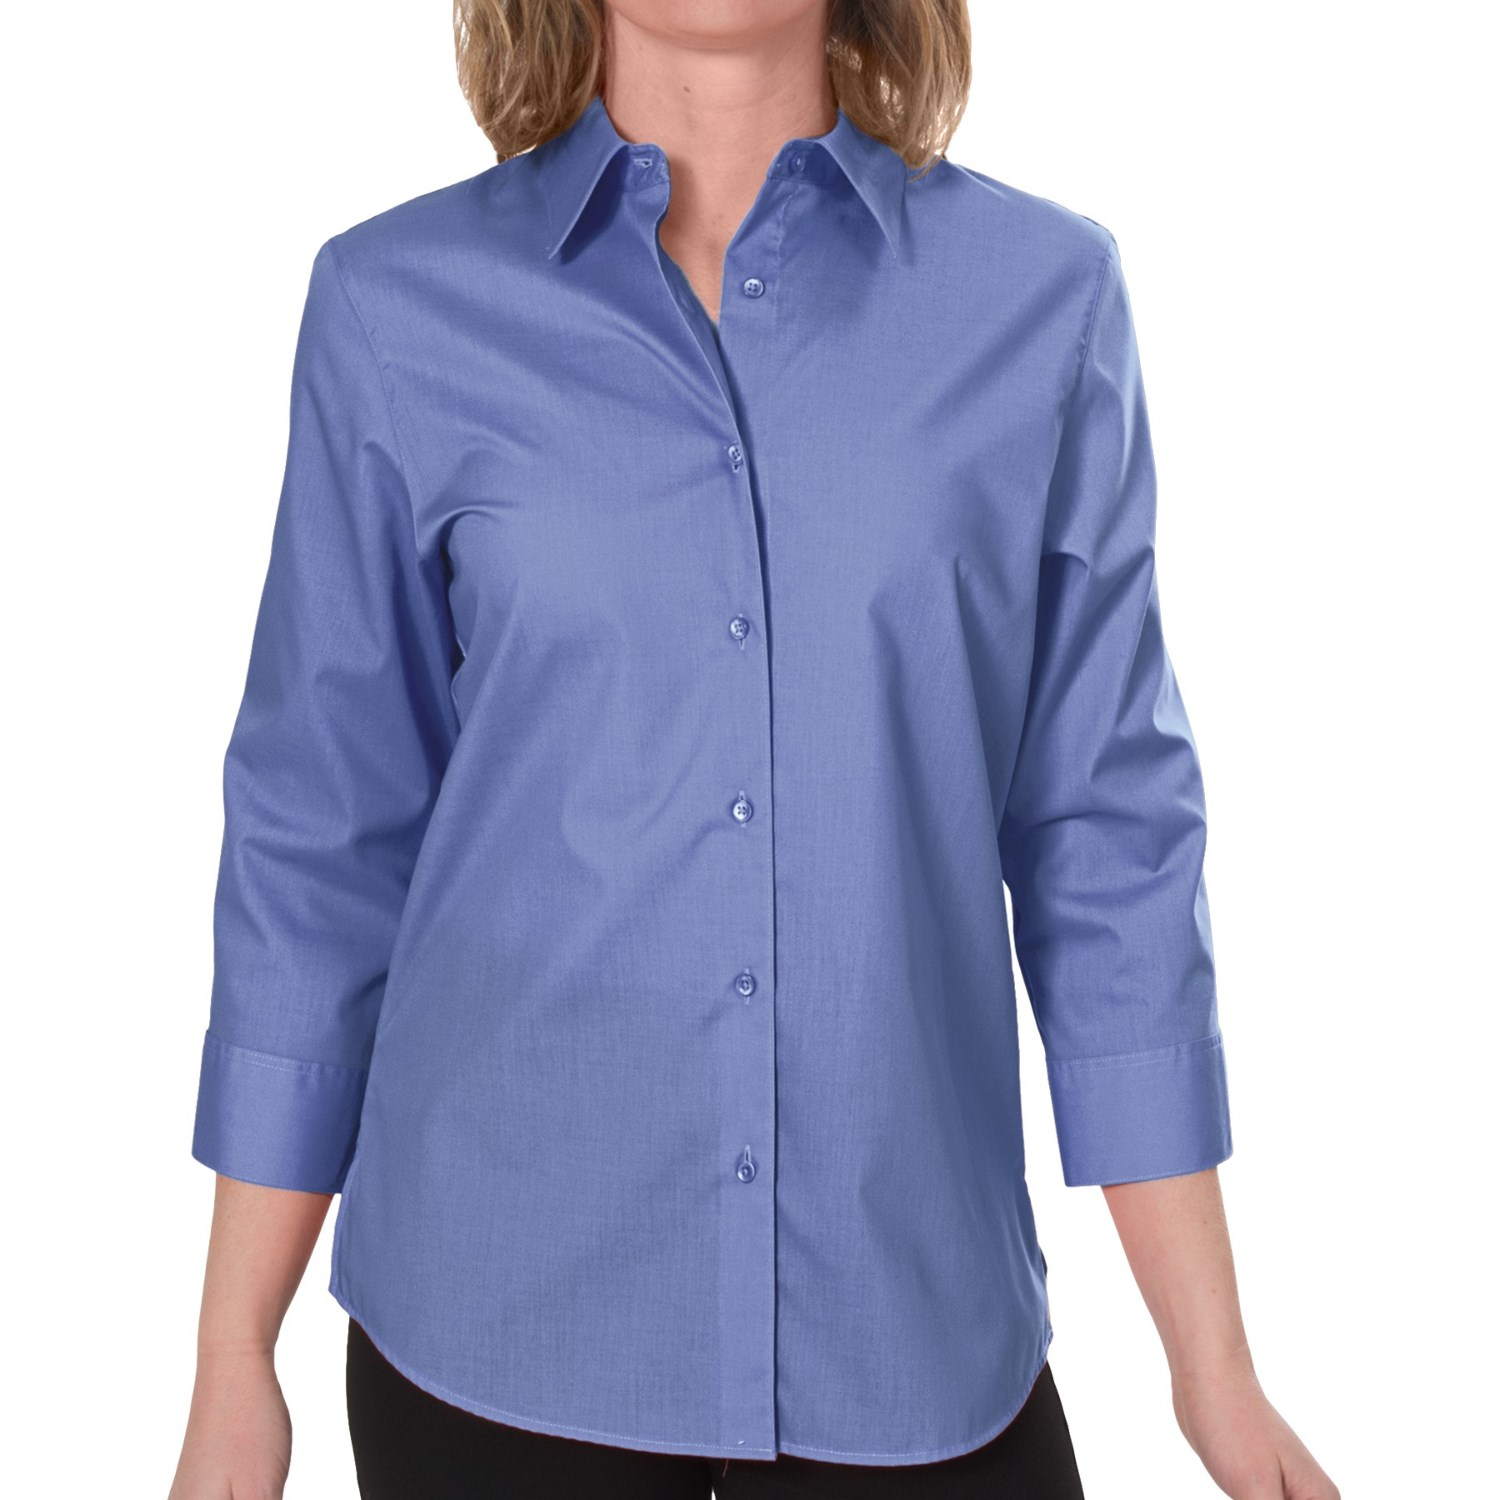 Foxcroft wrinkle free blouses sale lace henley blouse for Women s broadcloth shirts